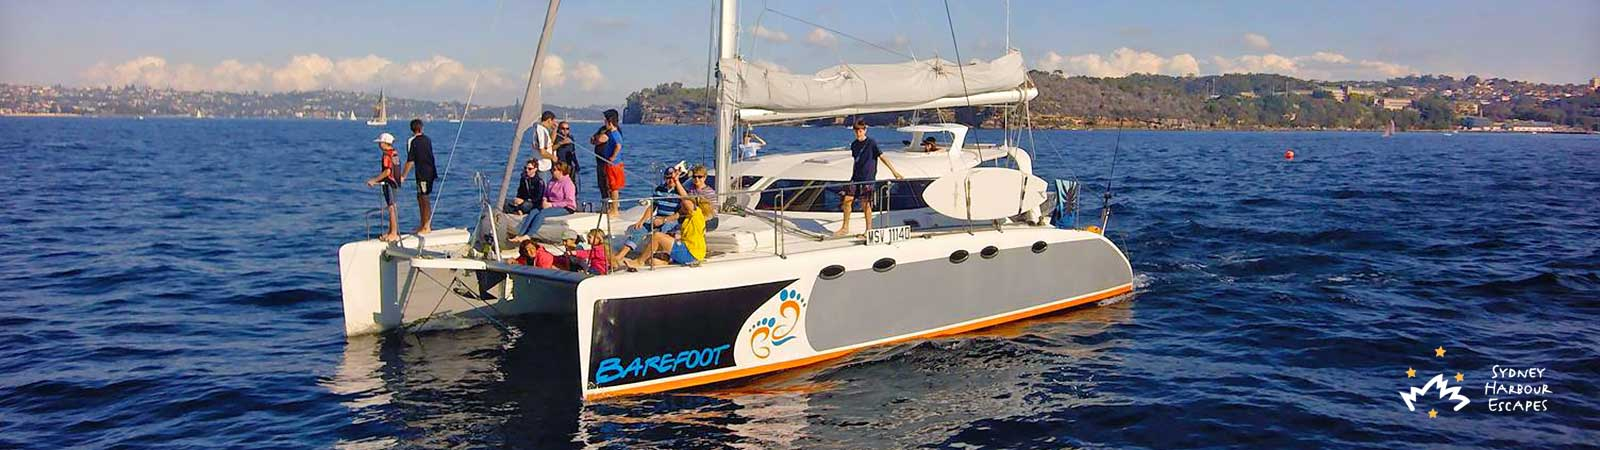 Barefoot Boat Hire - Private Boat Charter - Sydney Harbour